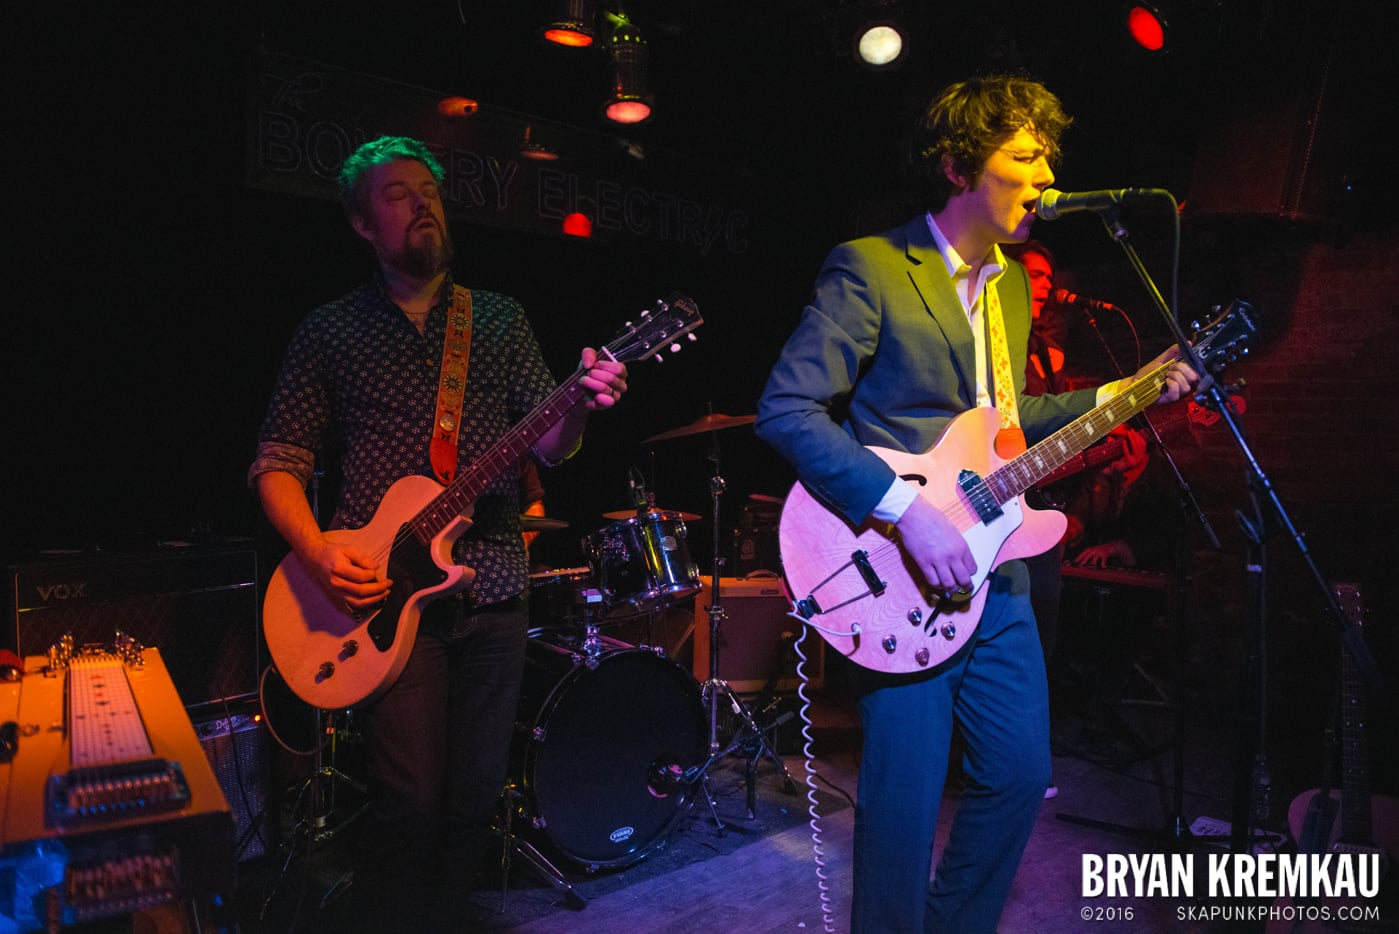 Trapper Schoepp & The Shades @ Bowery Electric, NYC - 11.20.14 (23)